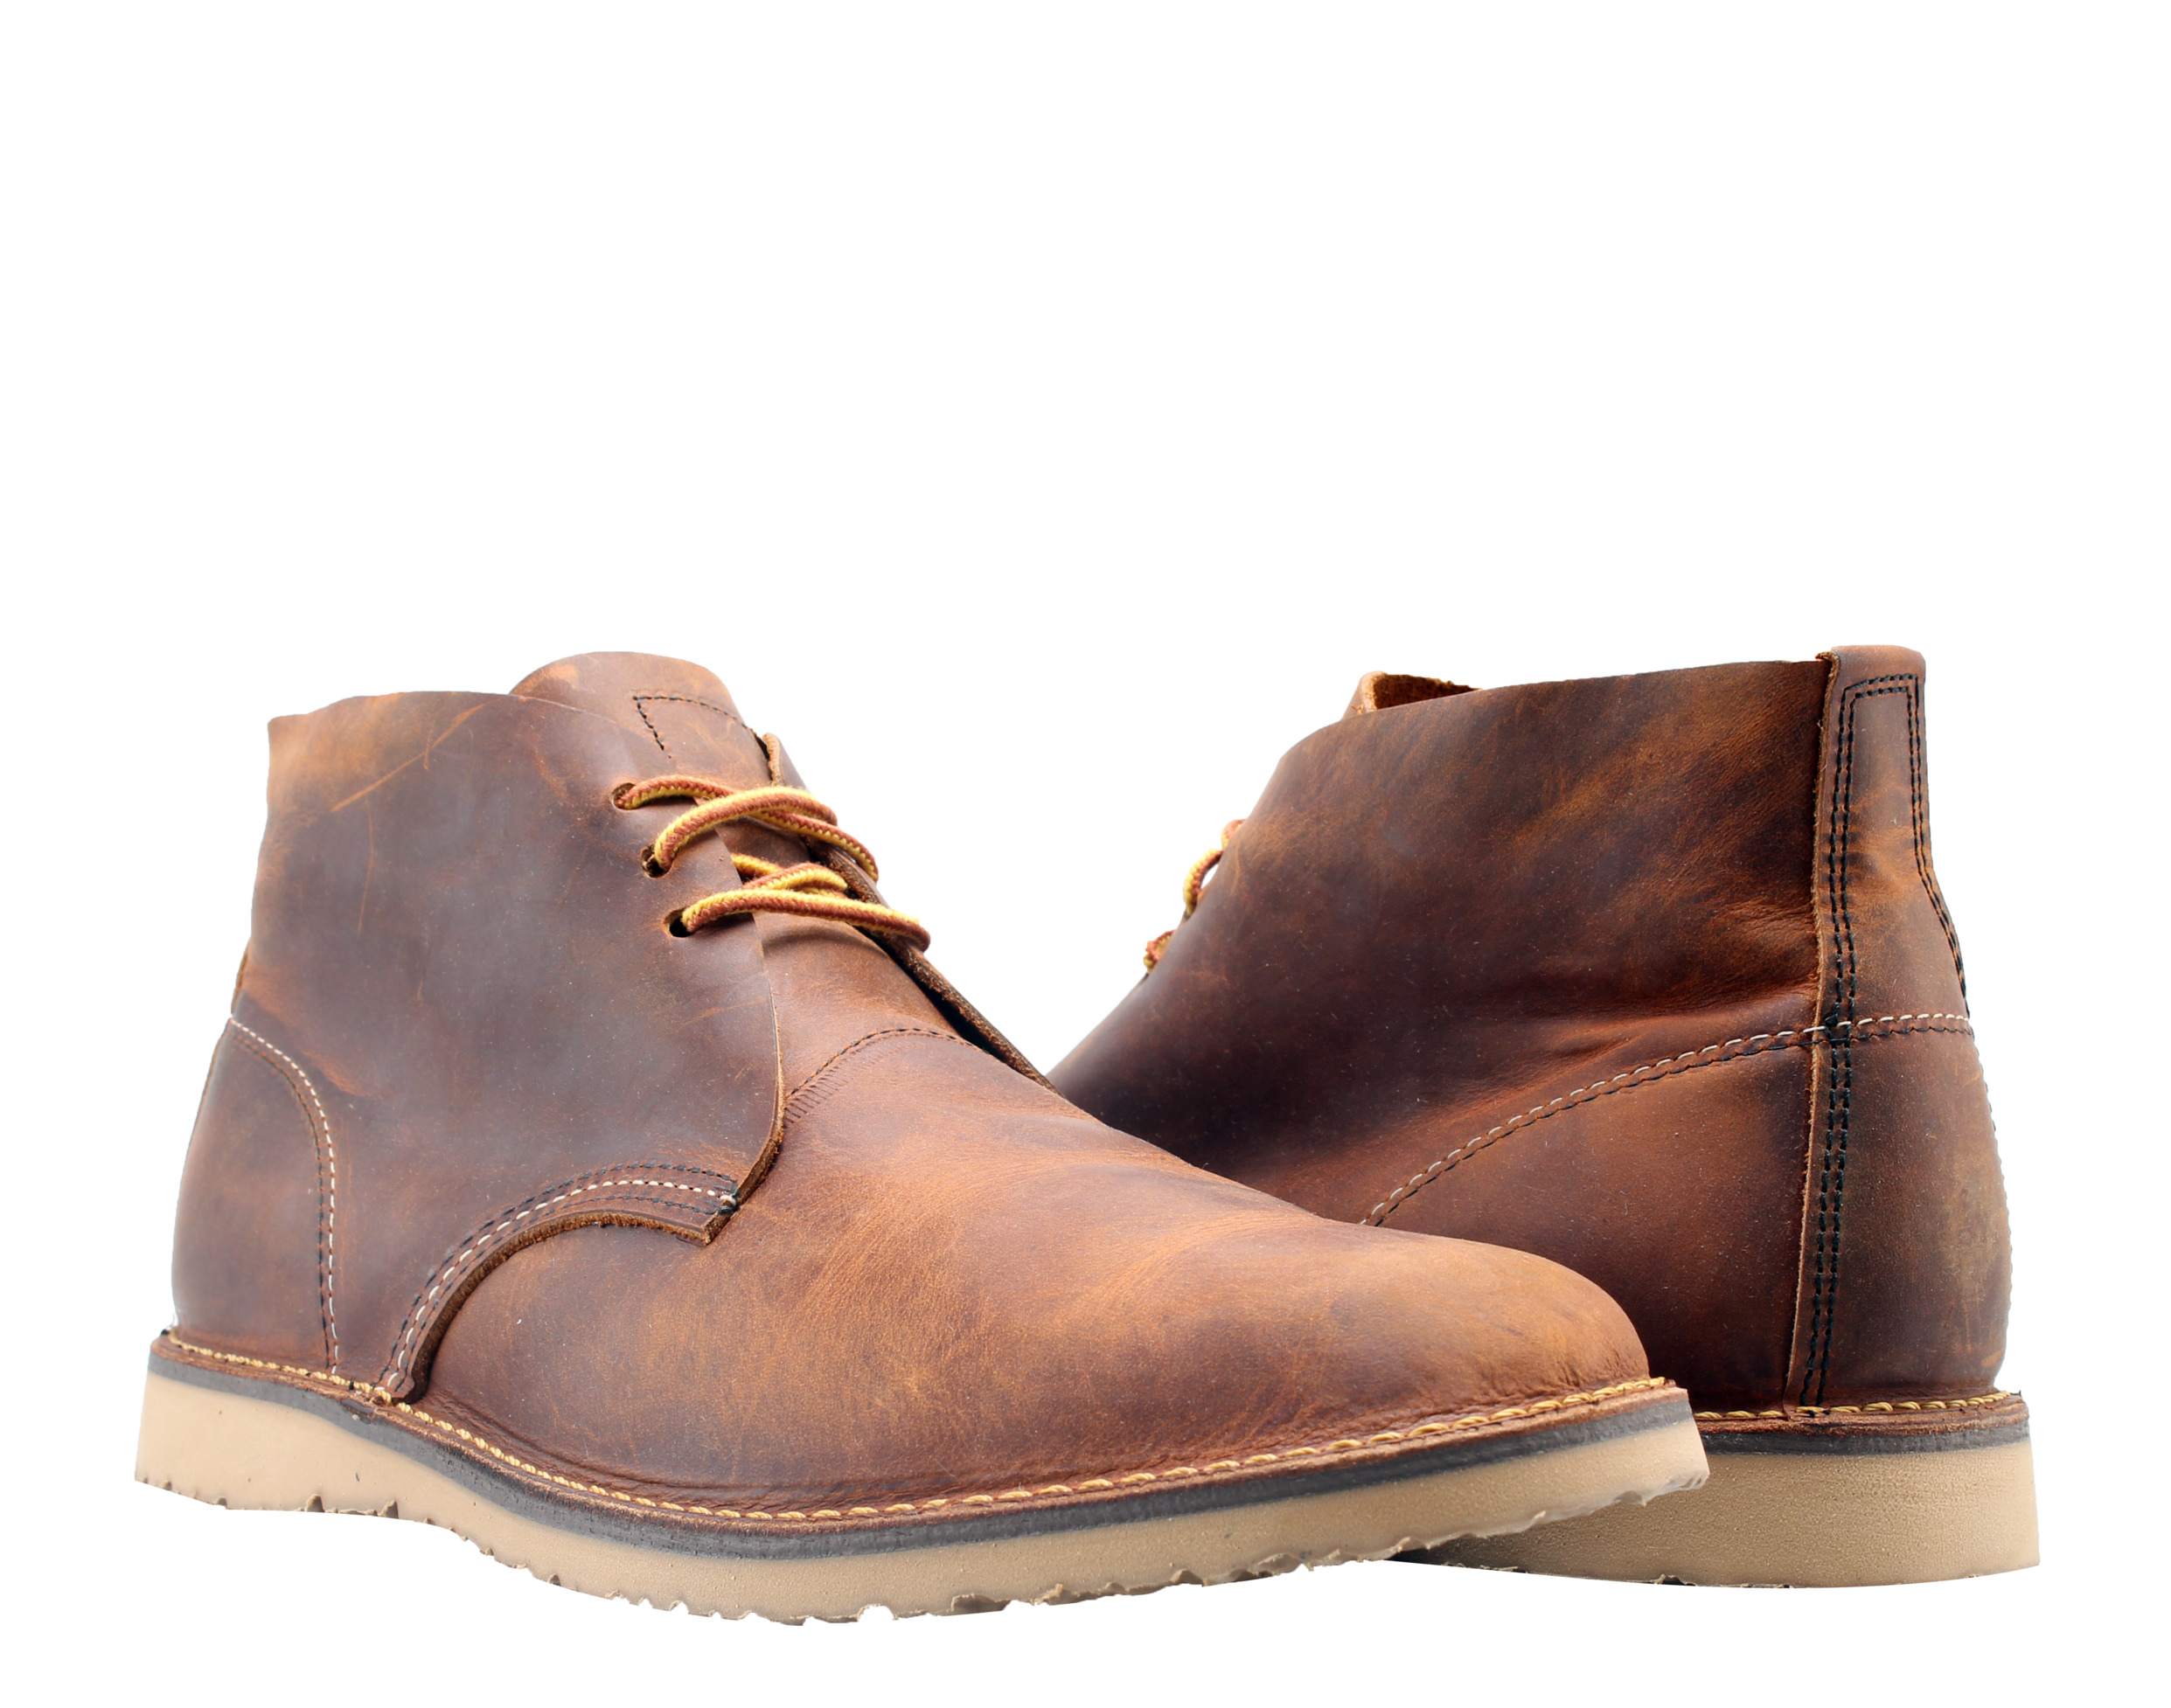 Red Wing Heritage Weekender Chukka 3322 Copper Rough Men's Shoes 03322